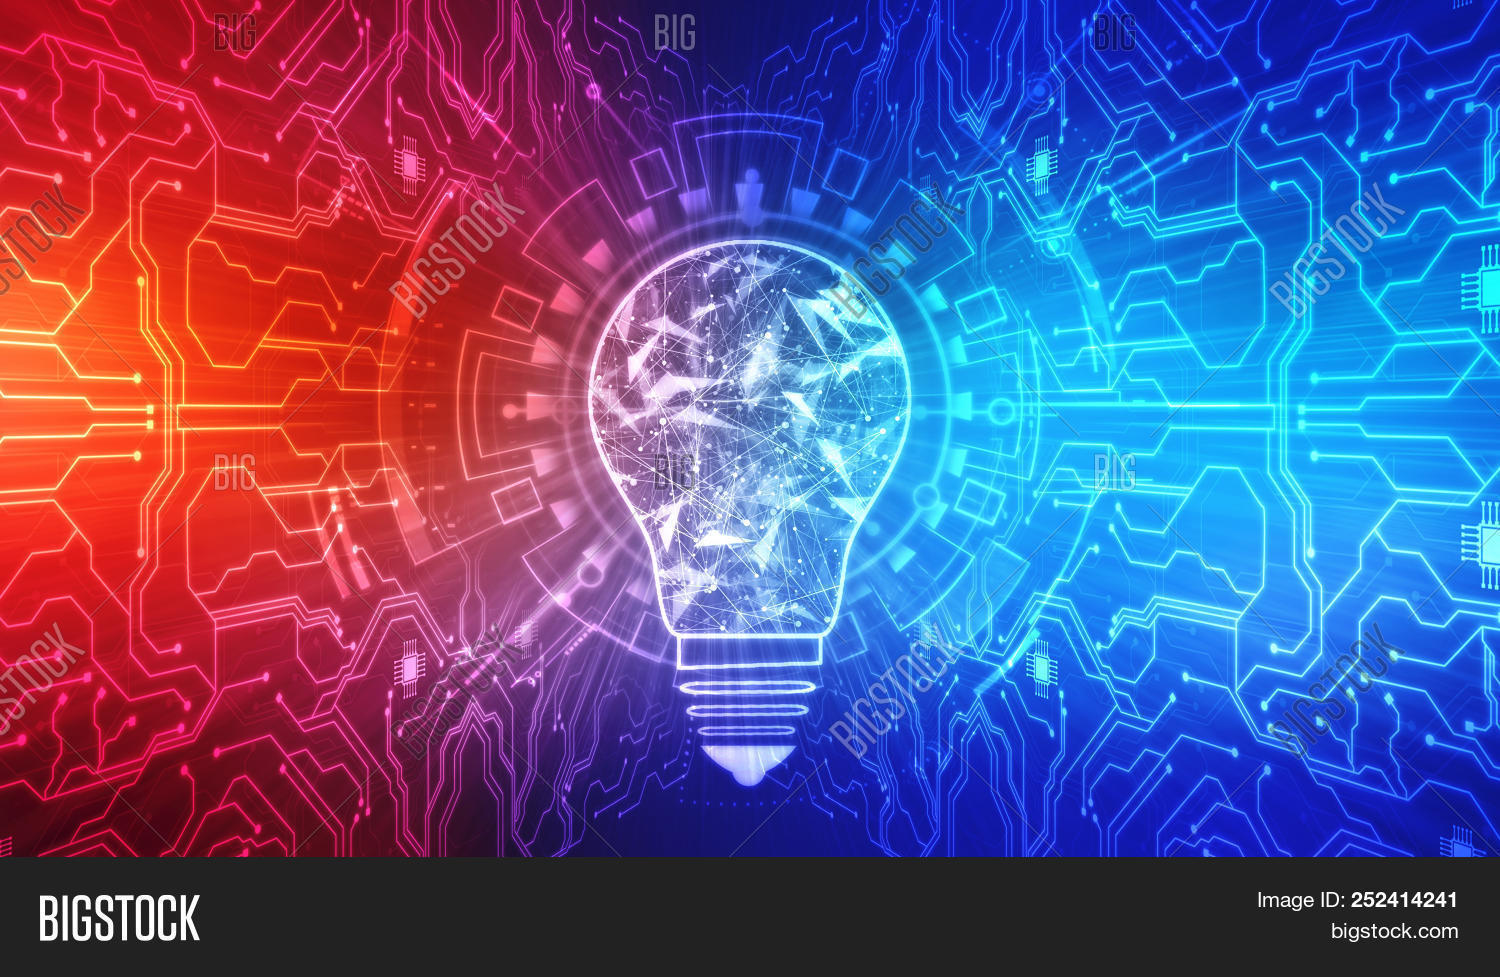 bulb future technology image photo free trial bigstock bulb future technology image photo